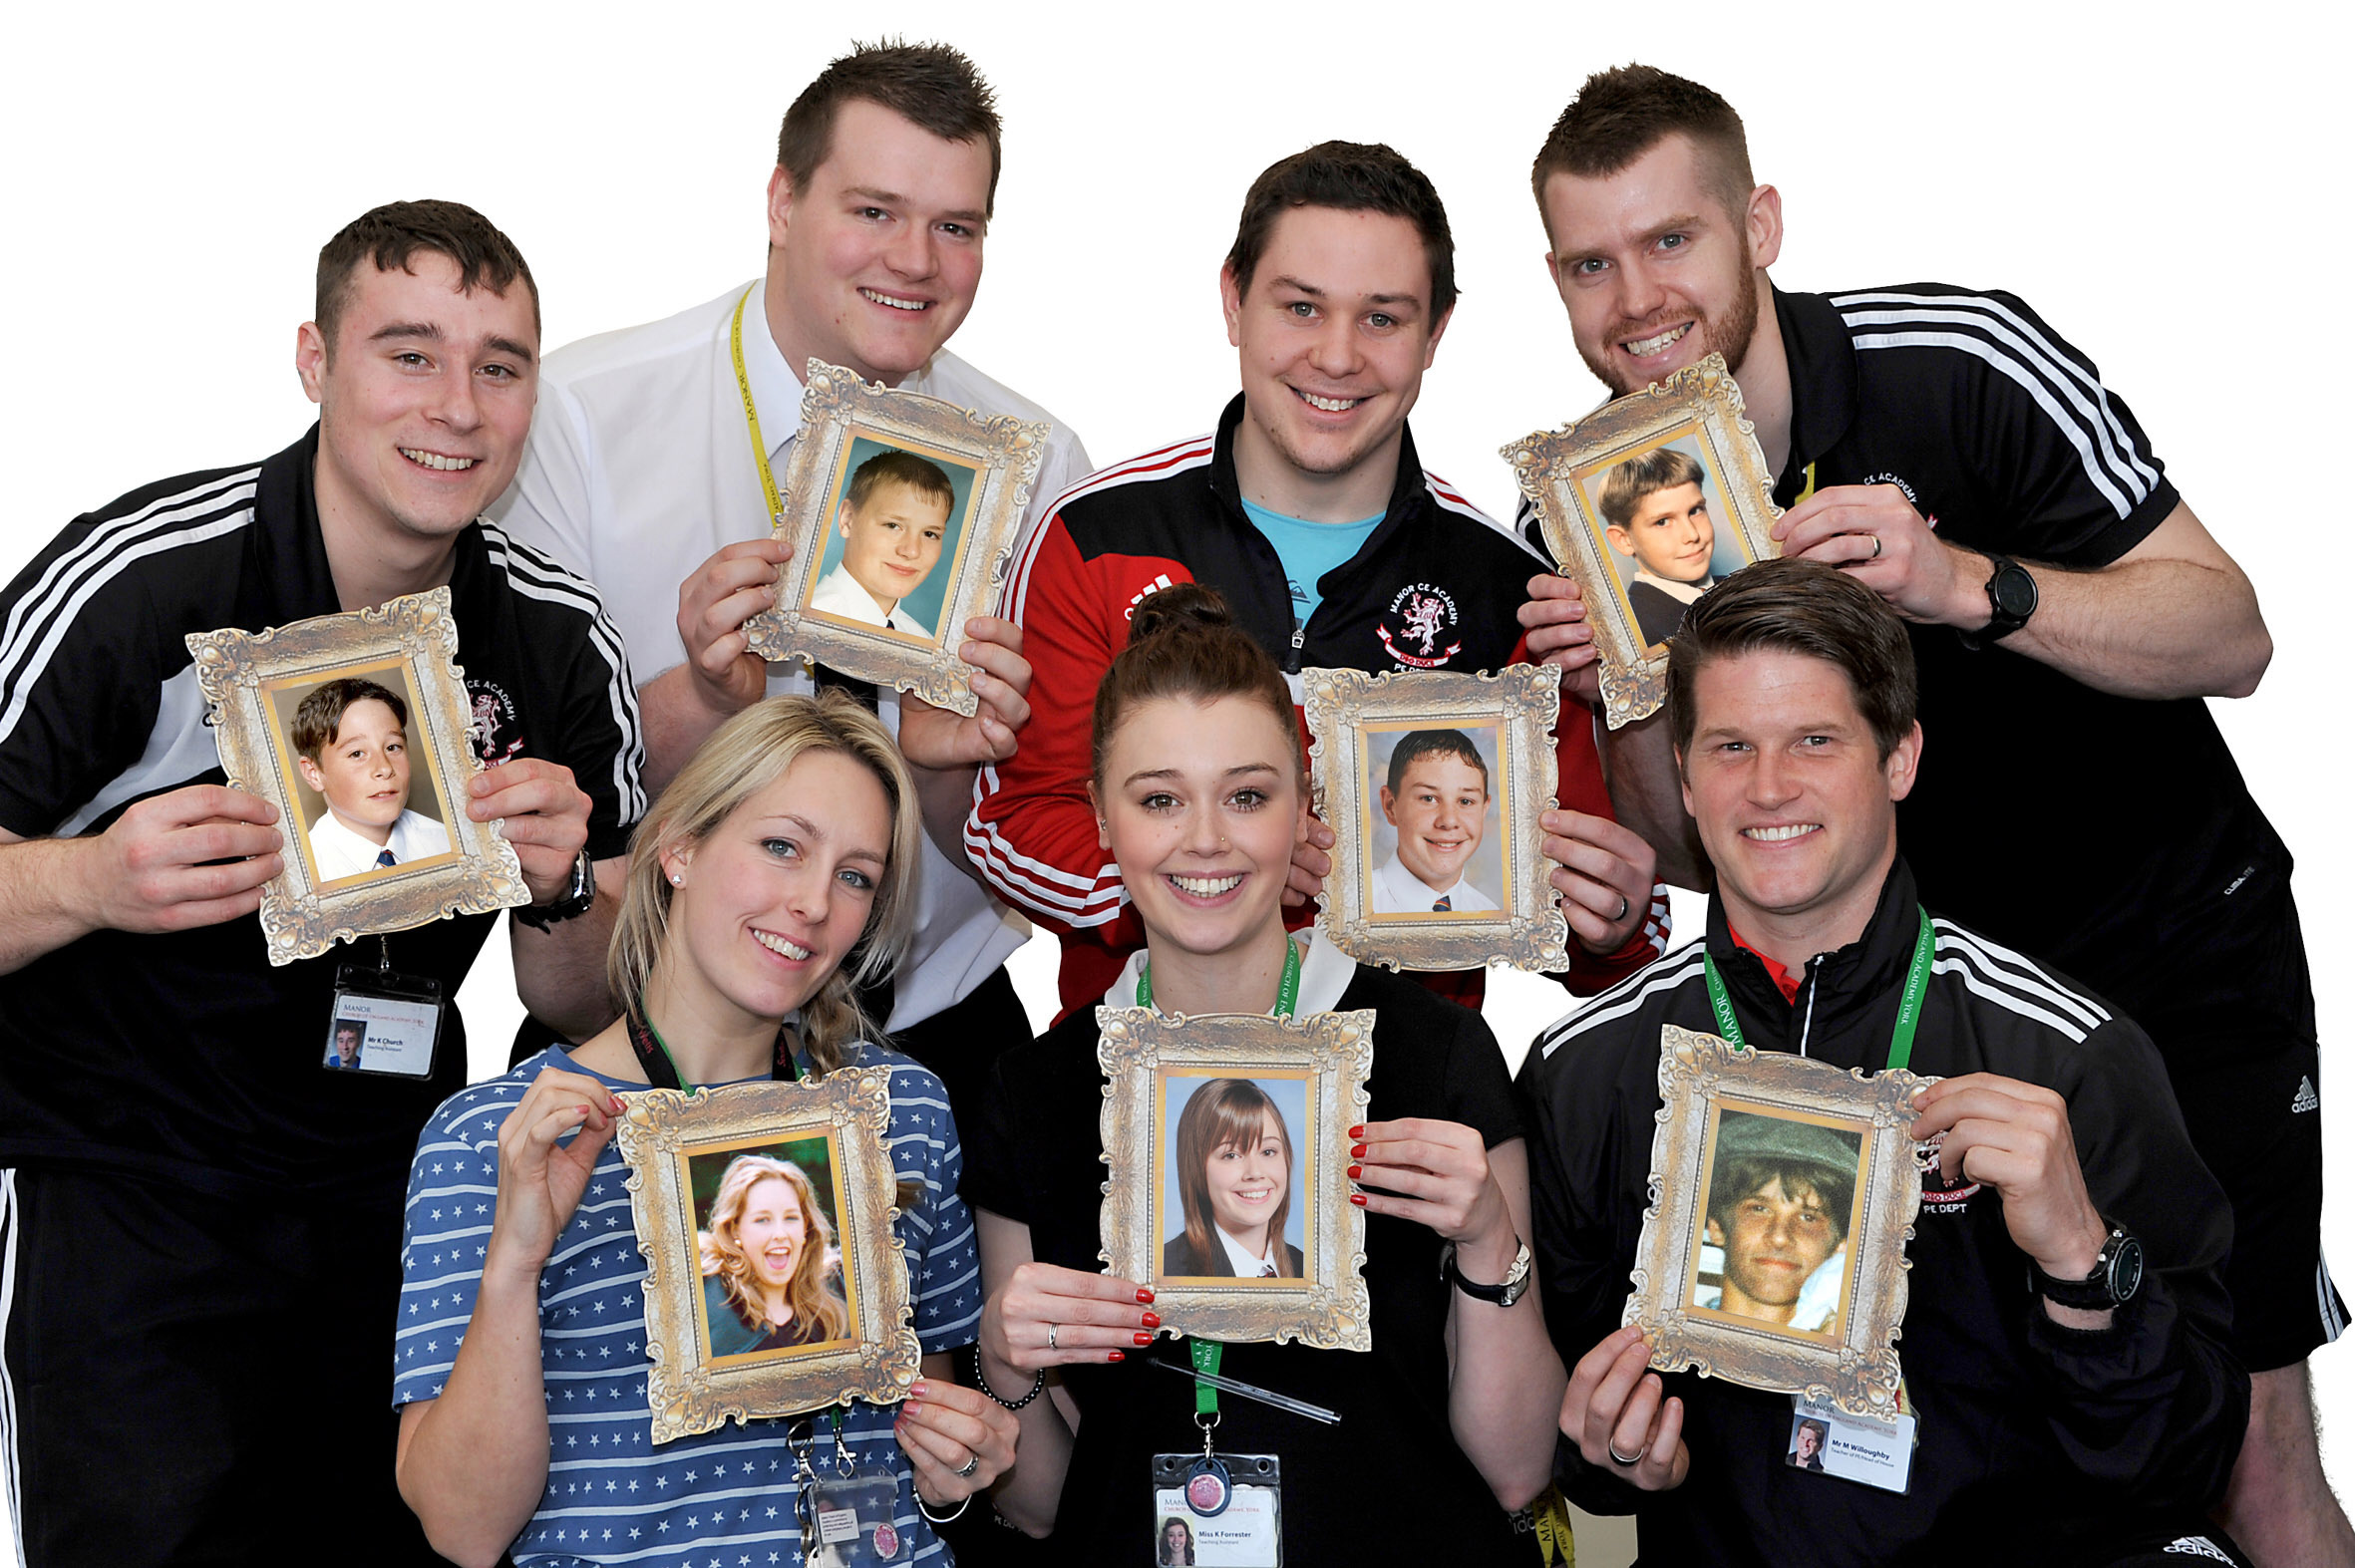 Melanie Fox, Mark Willoughby, Sean Rescorle, Kevin Church, David Cockerill, Sam Ross and Katie Forrester – pictured holding photographs of their younger selves